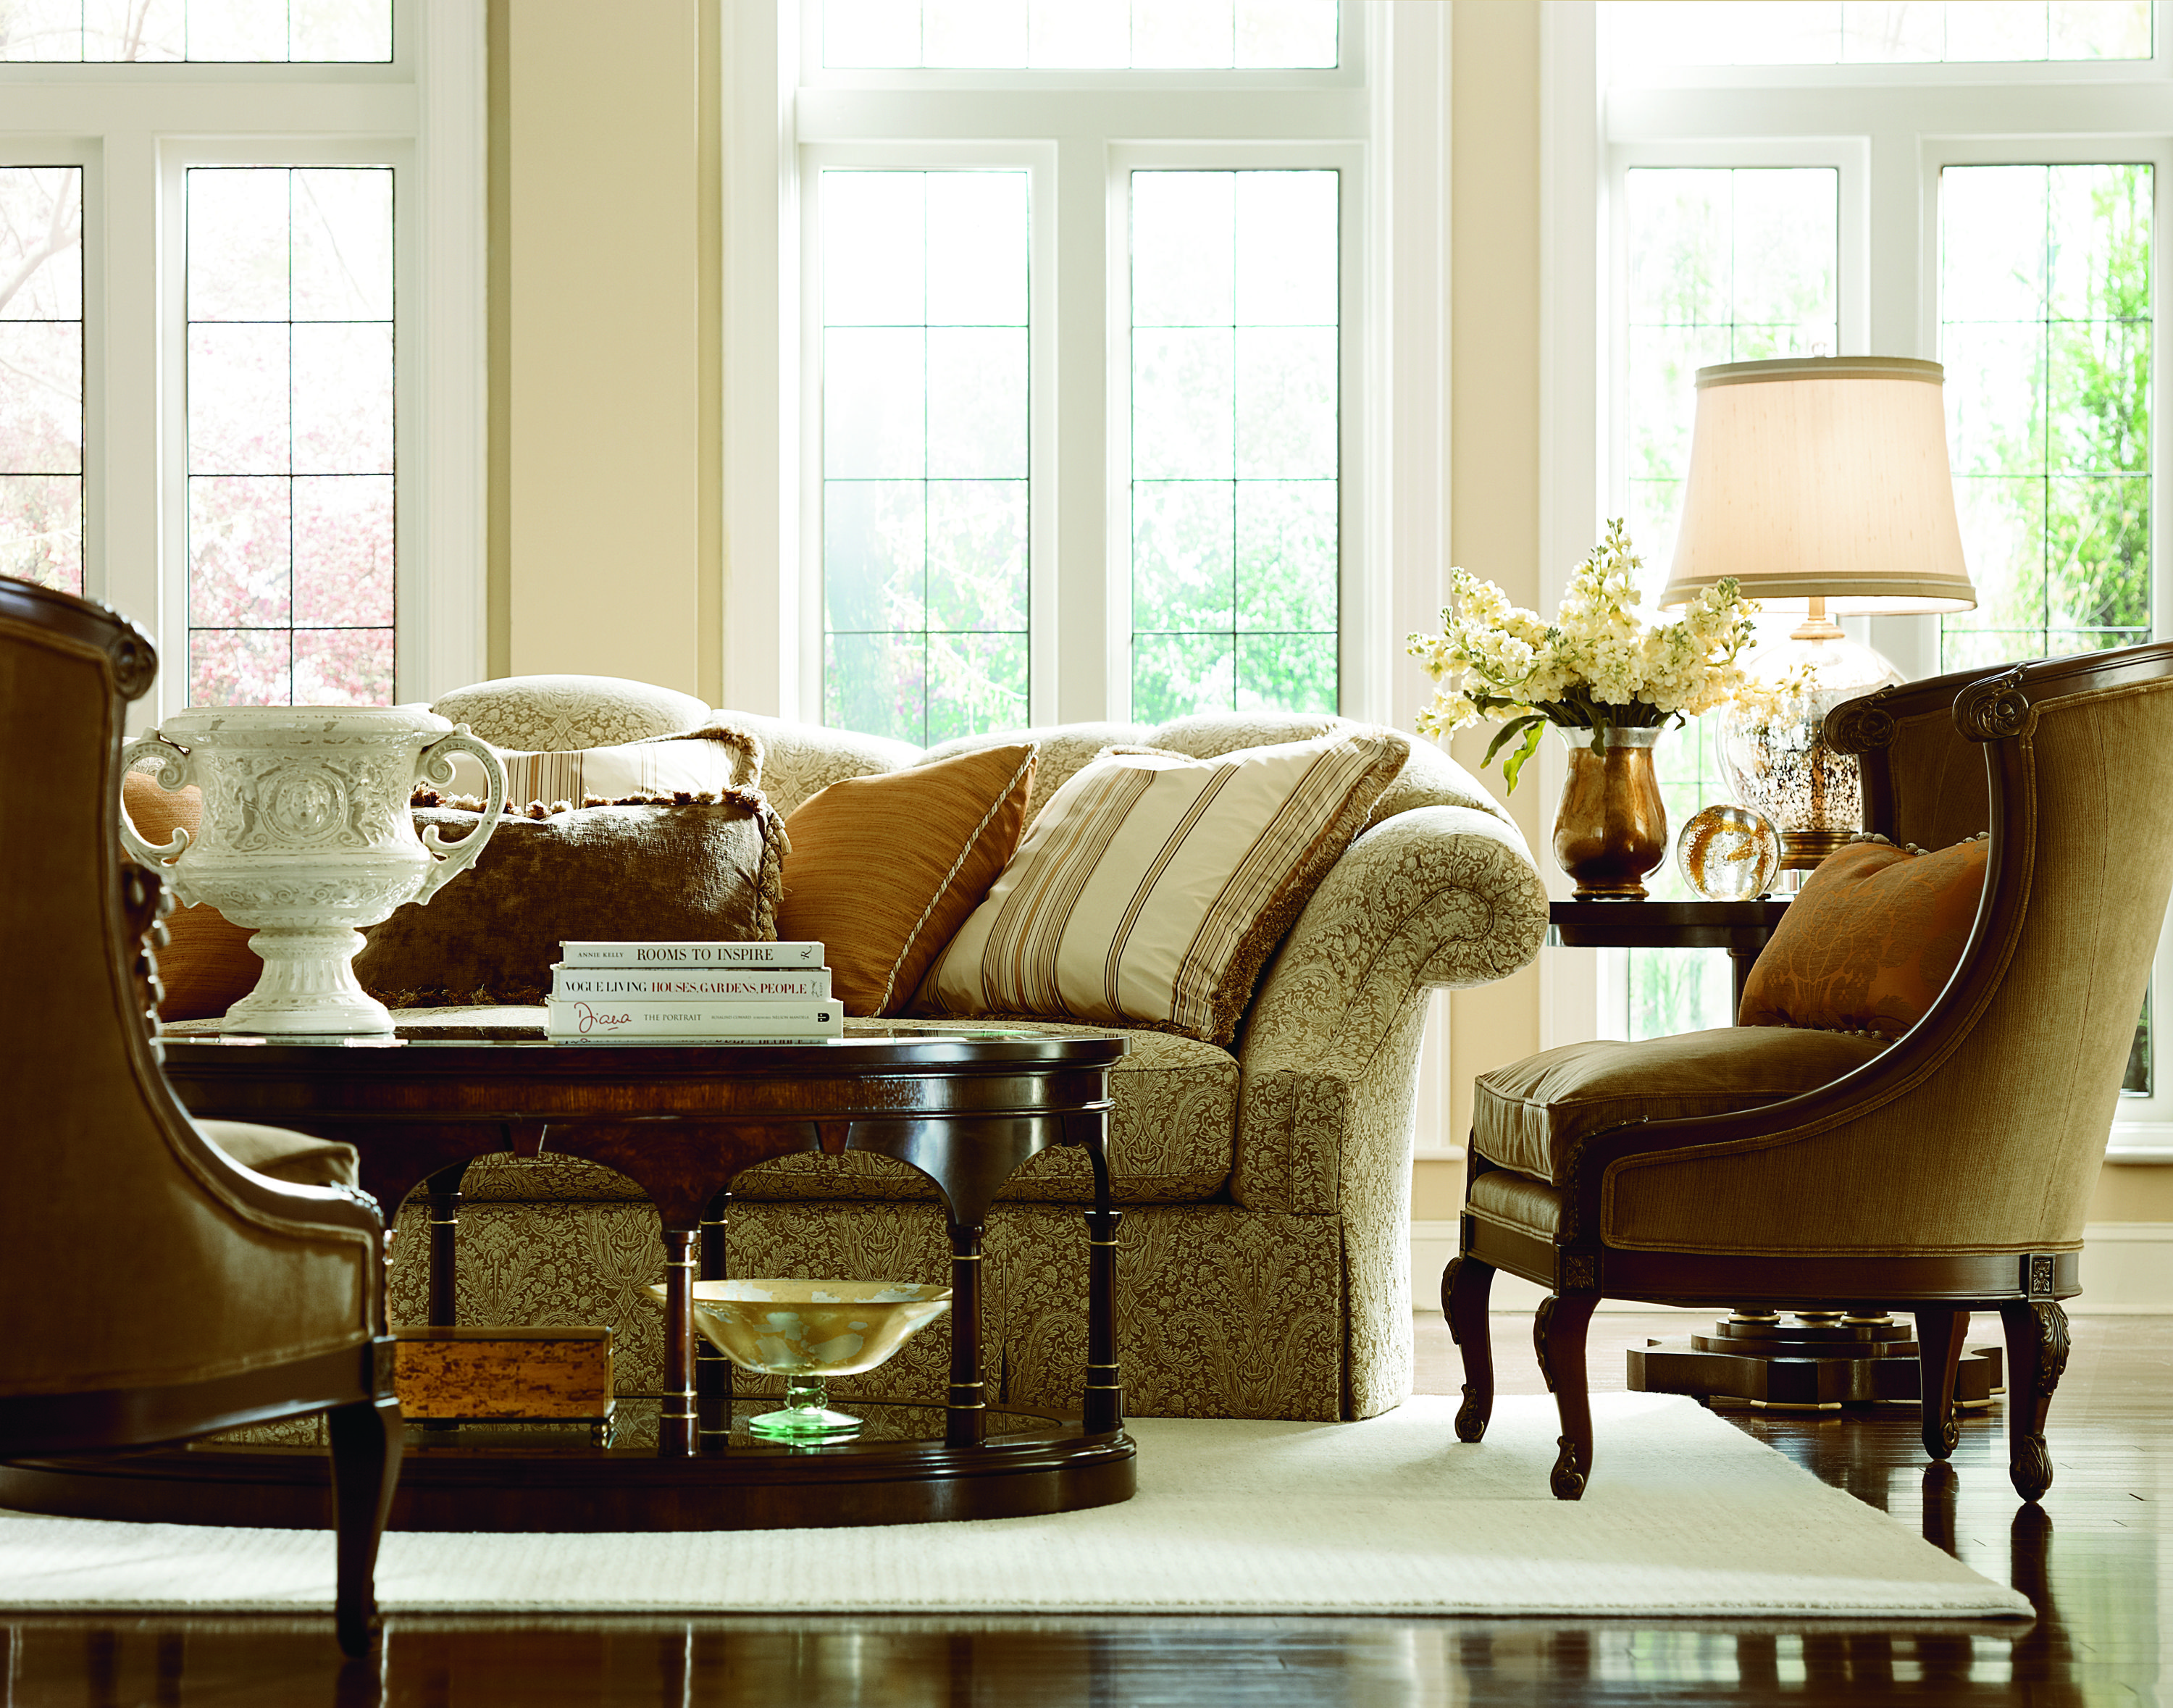 Pin by BOYLES on Living Spaces Furniture, Quality